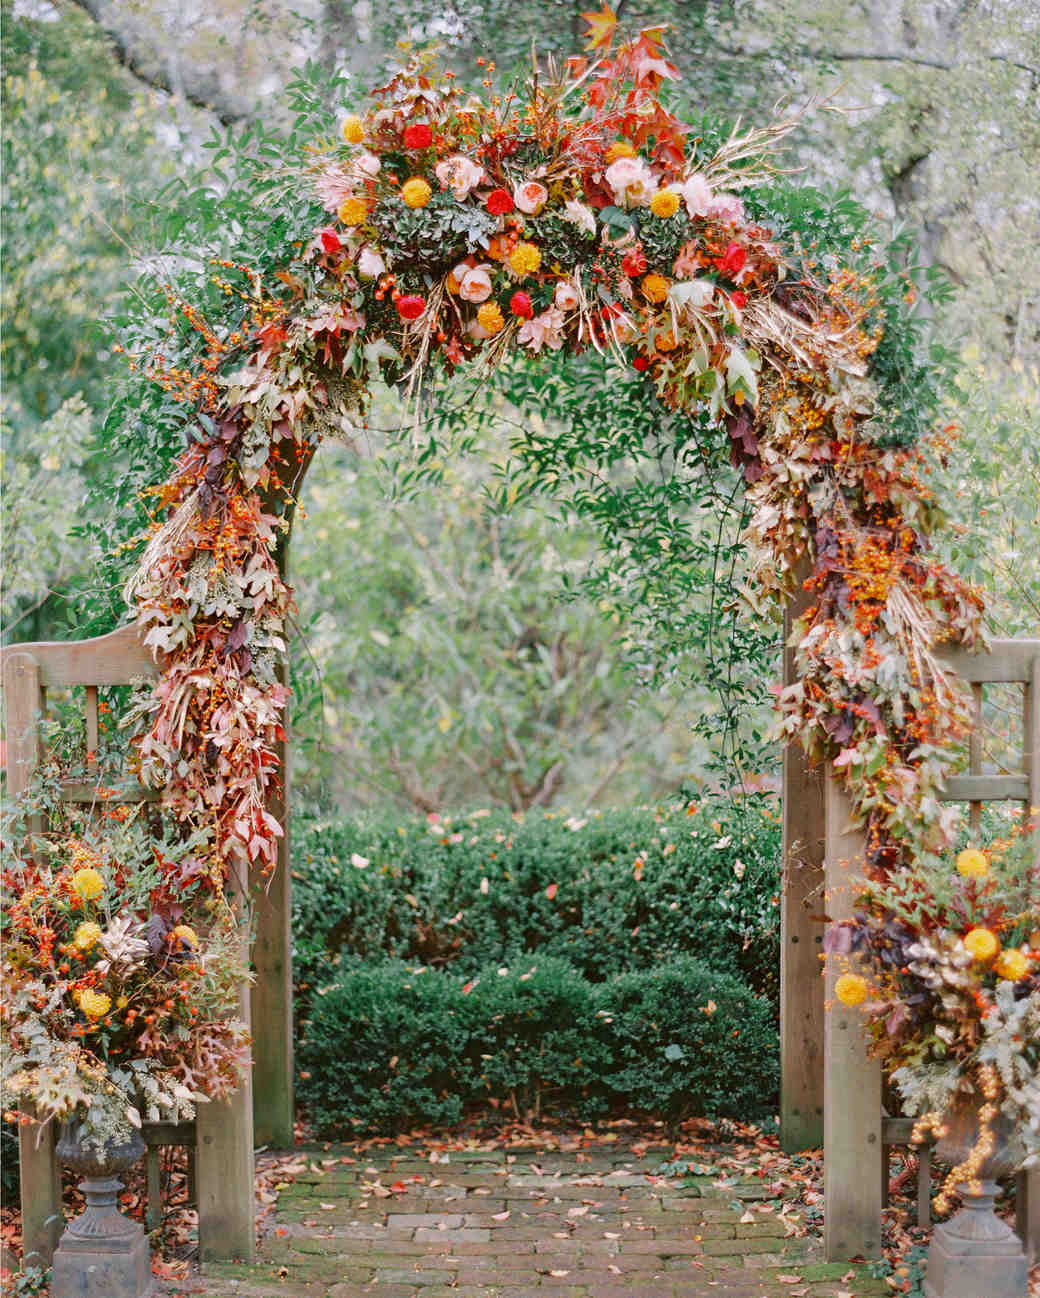 Autumnal Wedding Arch with Fall Foliage